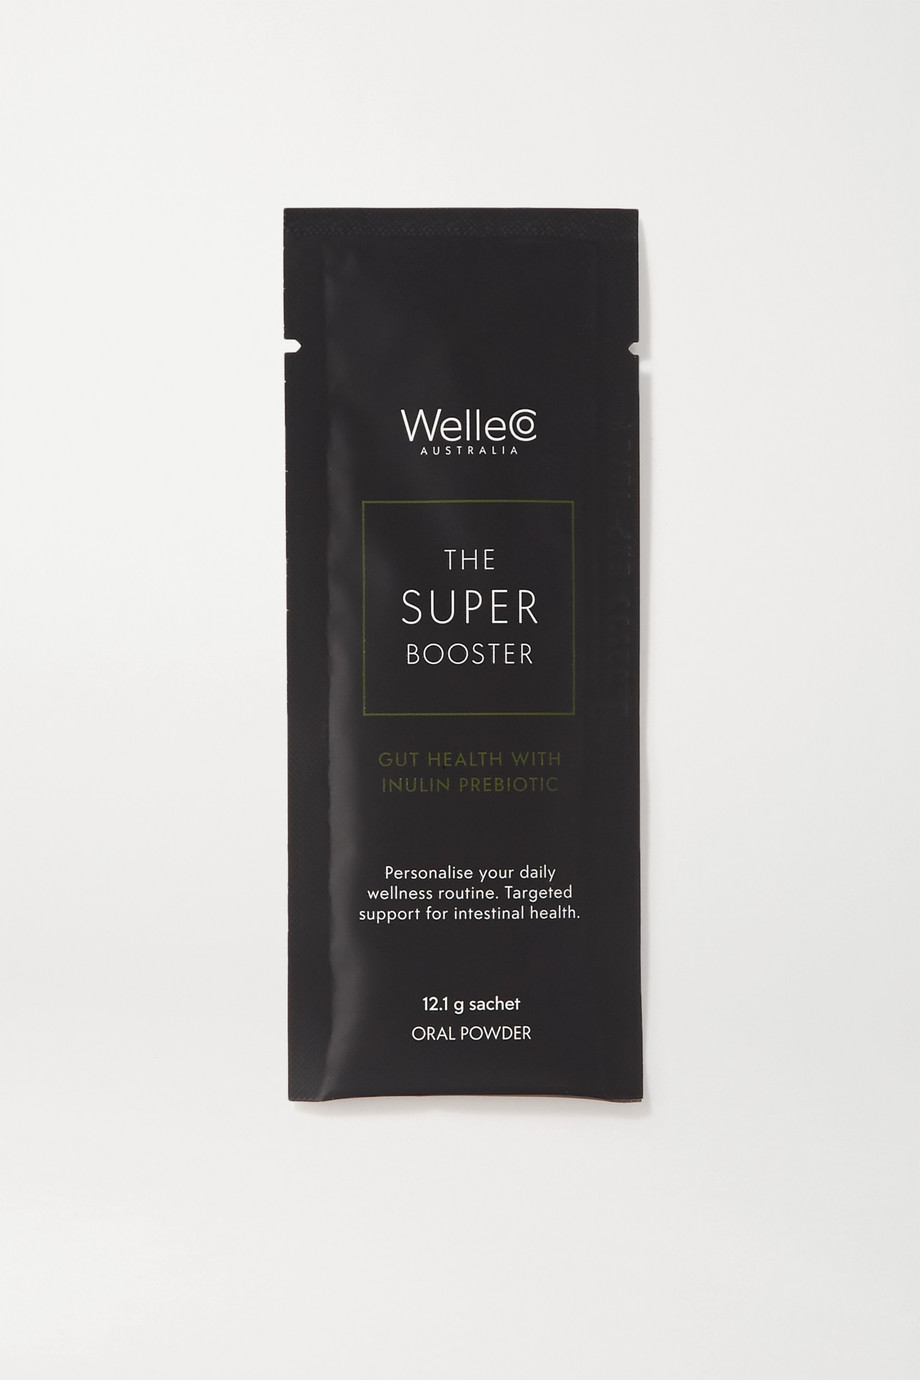 WelleCo The Super Booster - Gut Health with Inulin Prebiotic, 14 x 12.1g